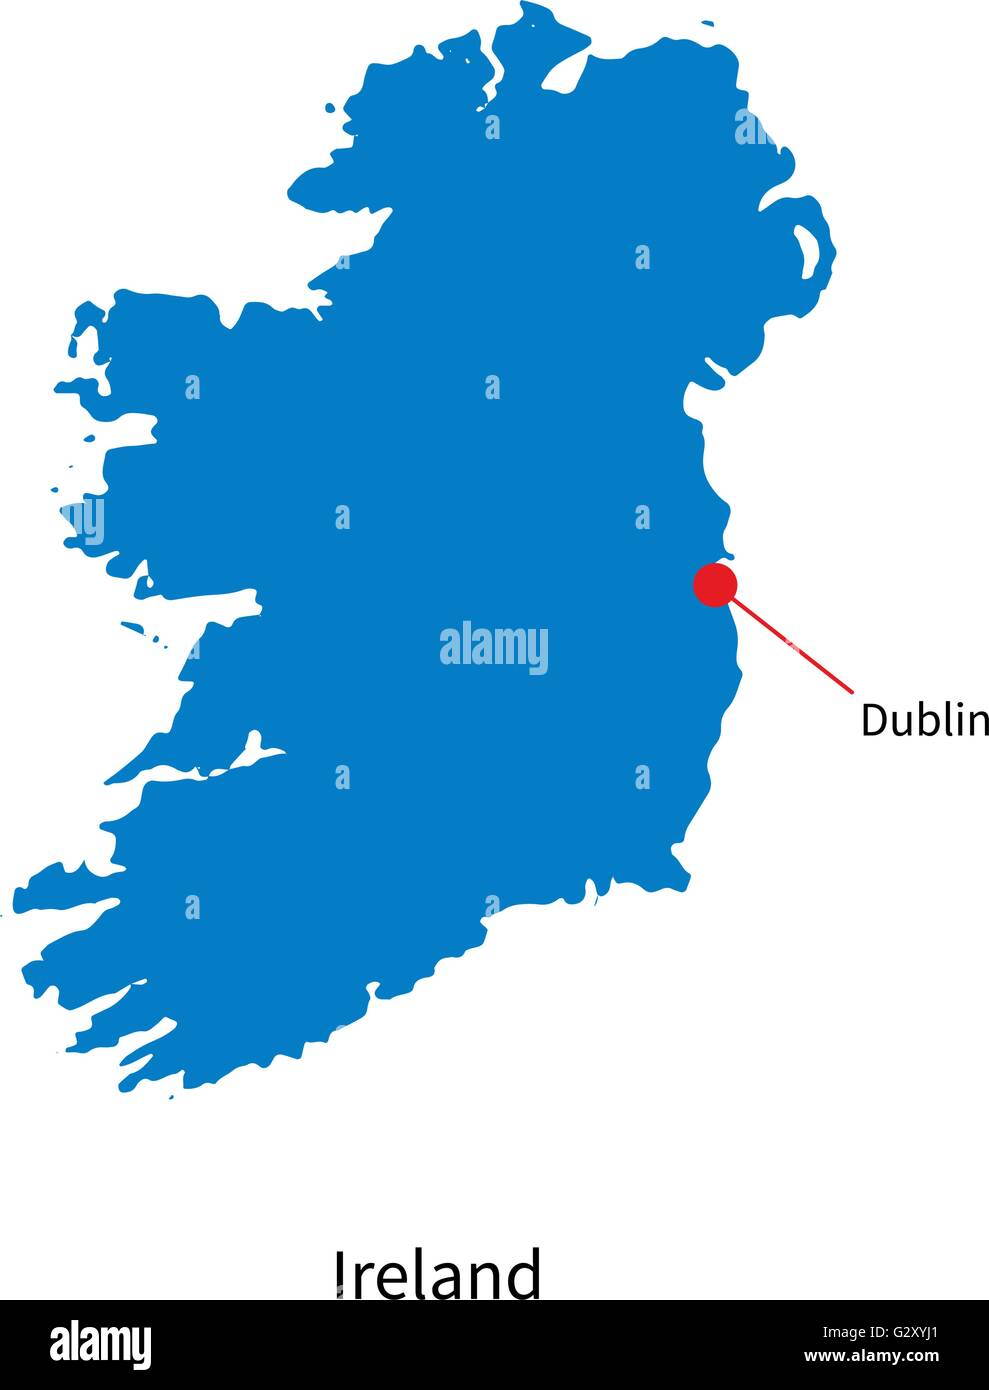 Map Of Ireland Vector.Detailed Vector Map Of Ireland And Capital City Dublin Stock Vector